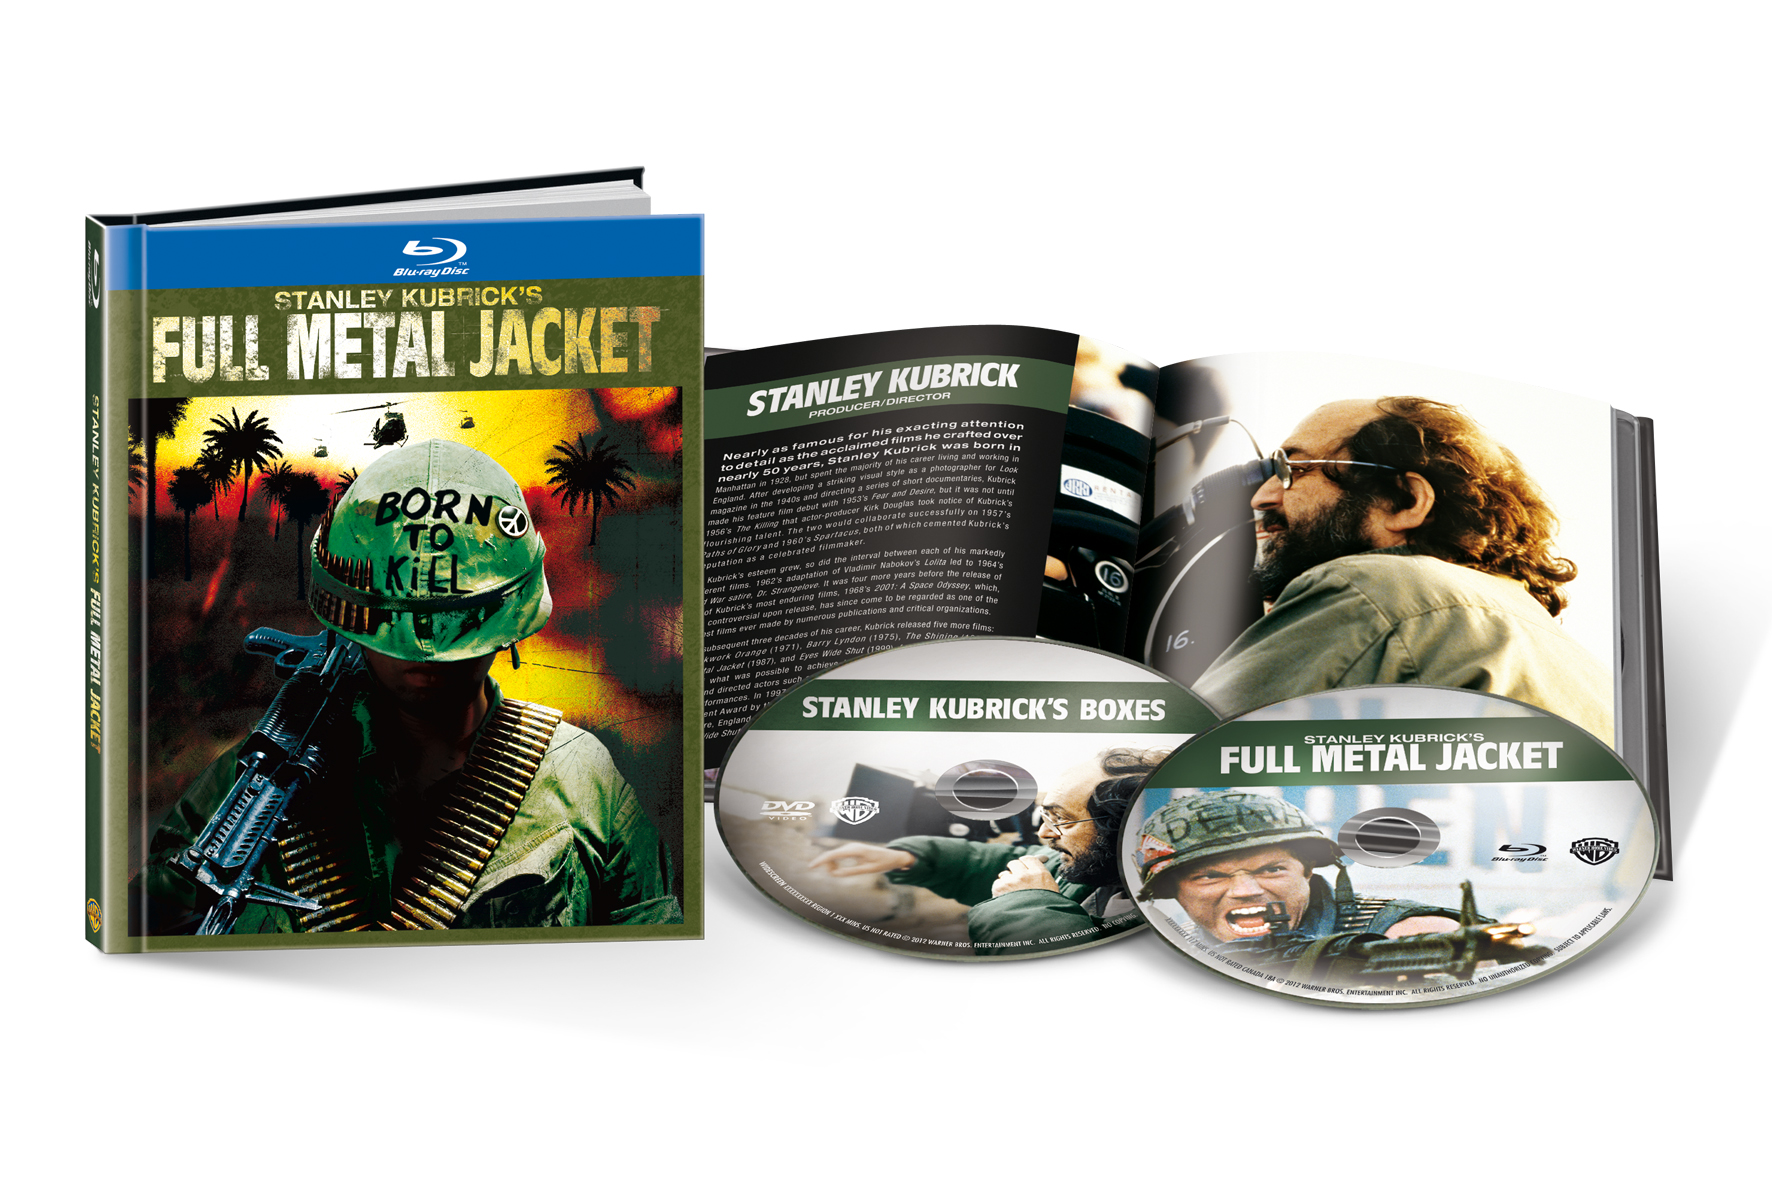 fullmetal jacket blu-ray digi book